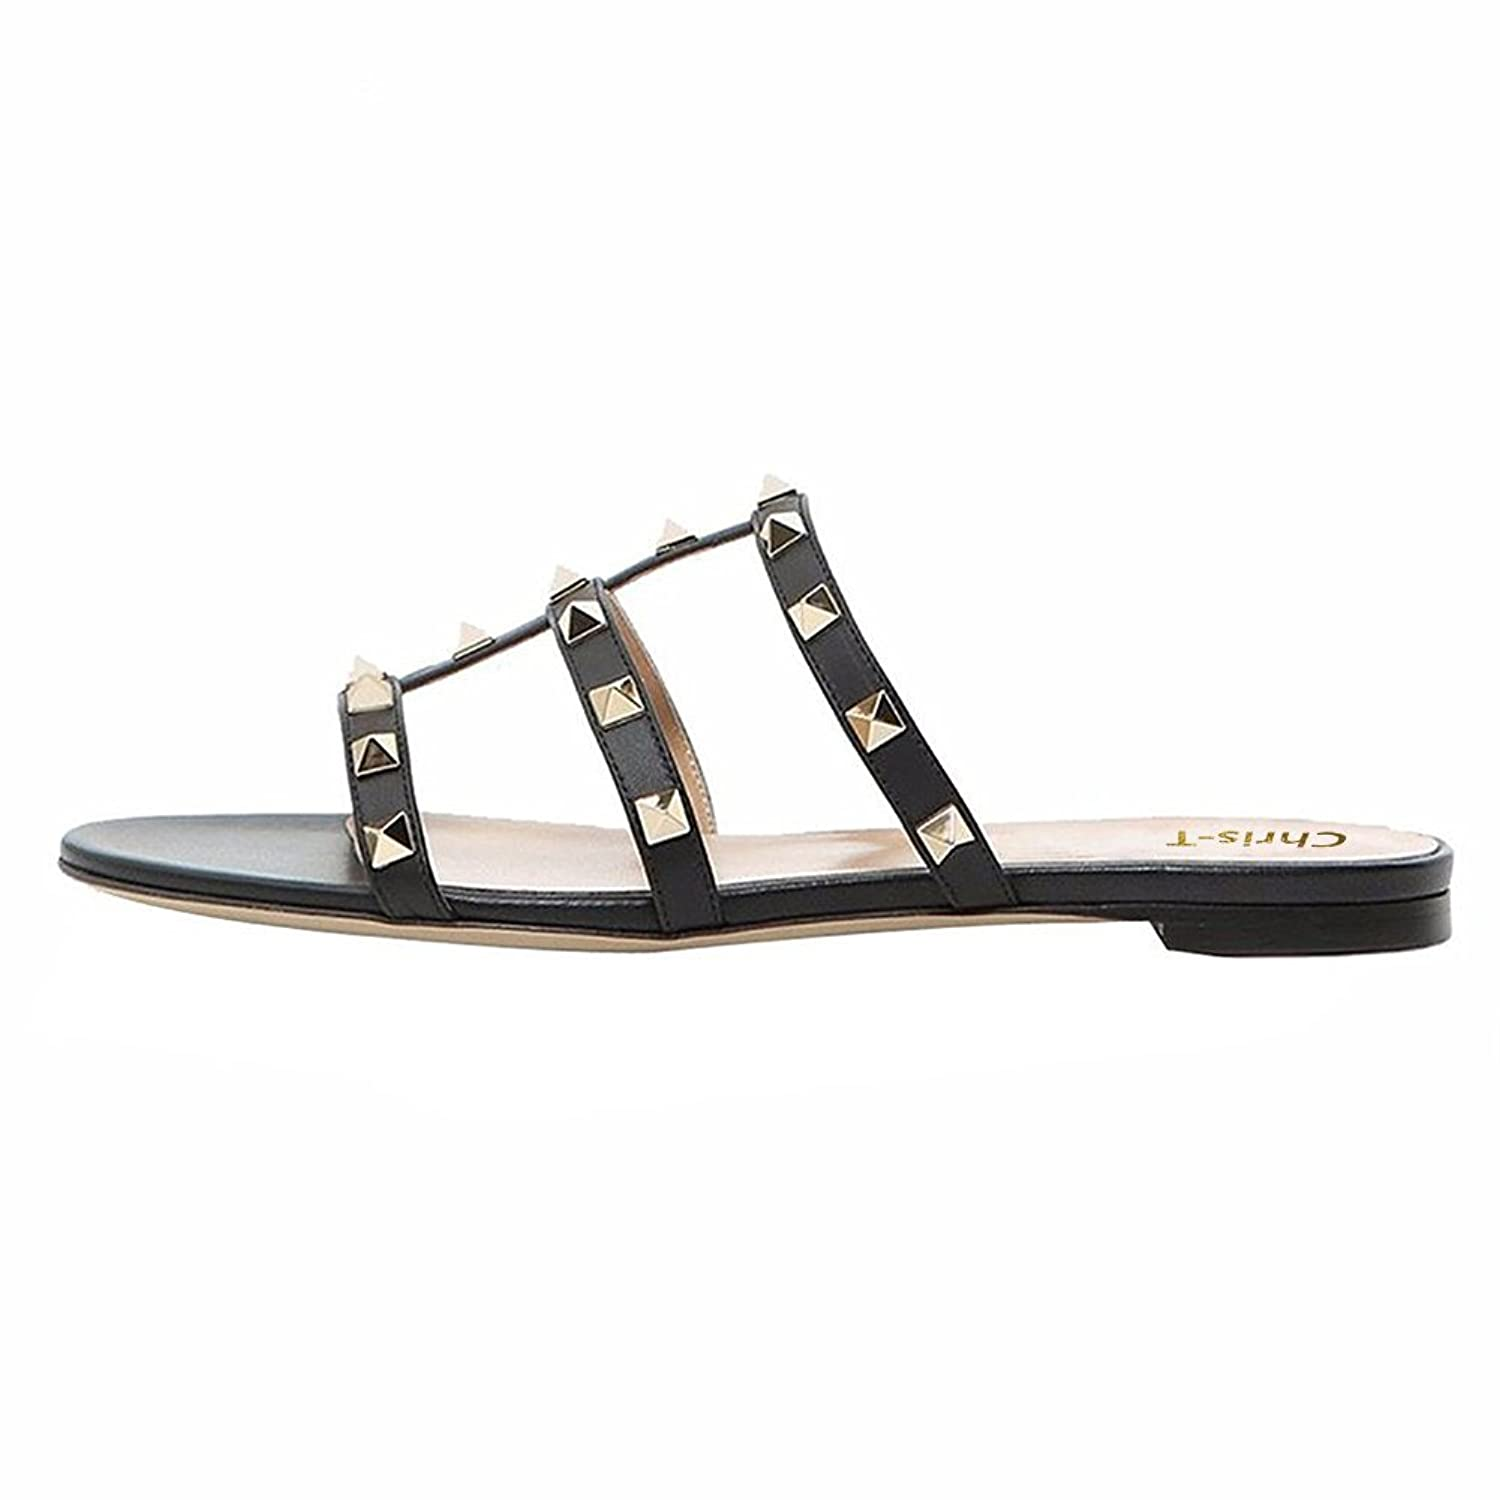 Chris T Womens Mules Flats Rivets Slides Rockstud Strappy Studded Sandals Backless Dress Slippers 5 14 Us by Chris T